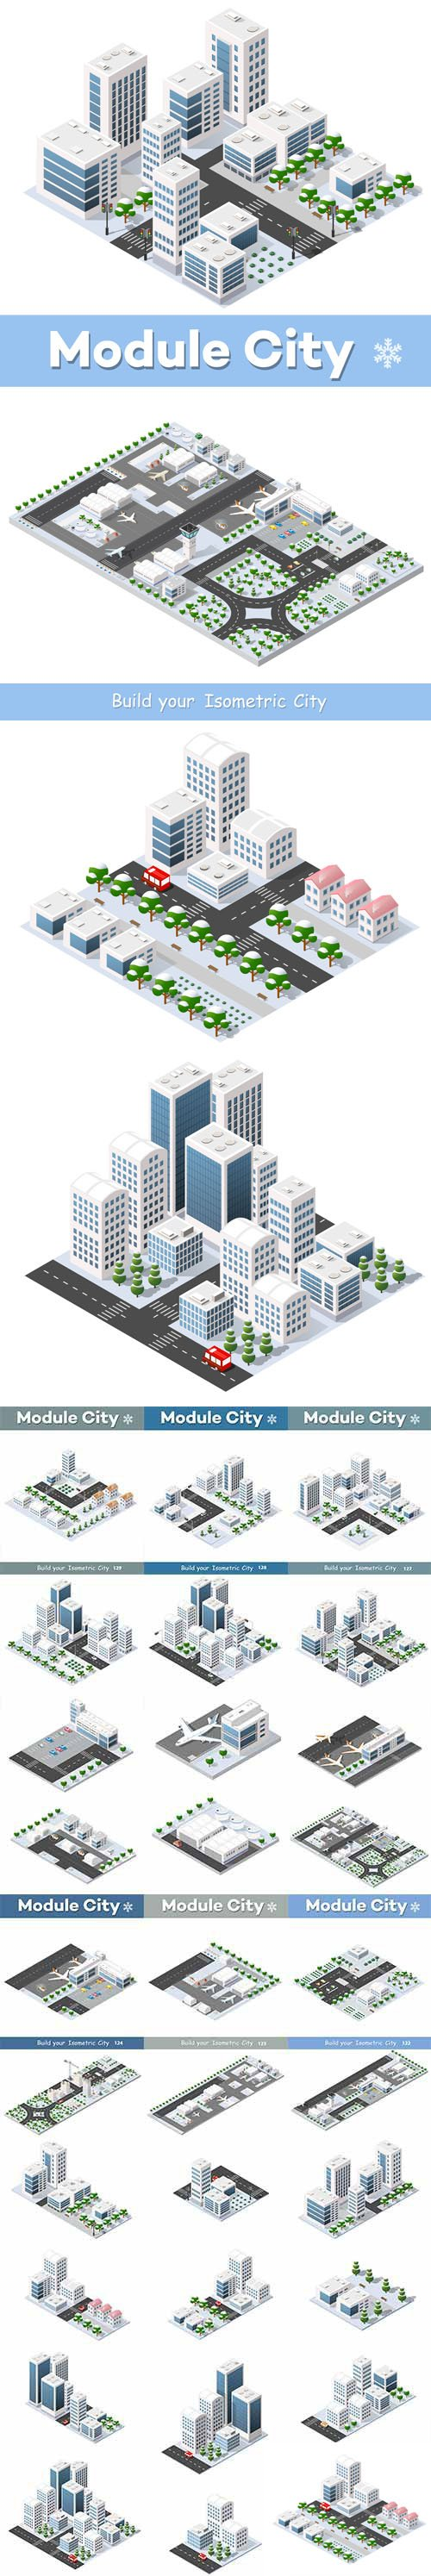 City Blocks in 3D - Vector Graphics - Build Your Isometric City !